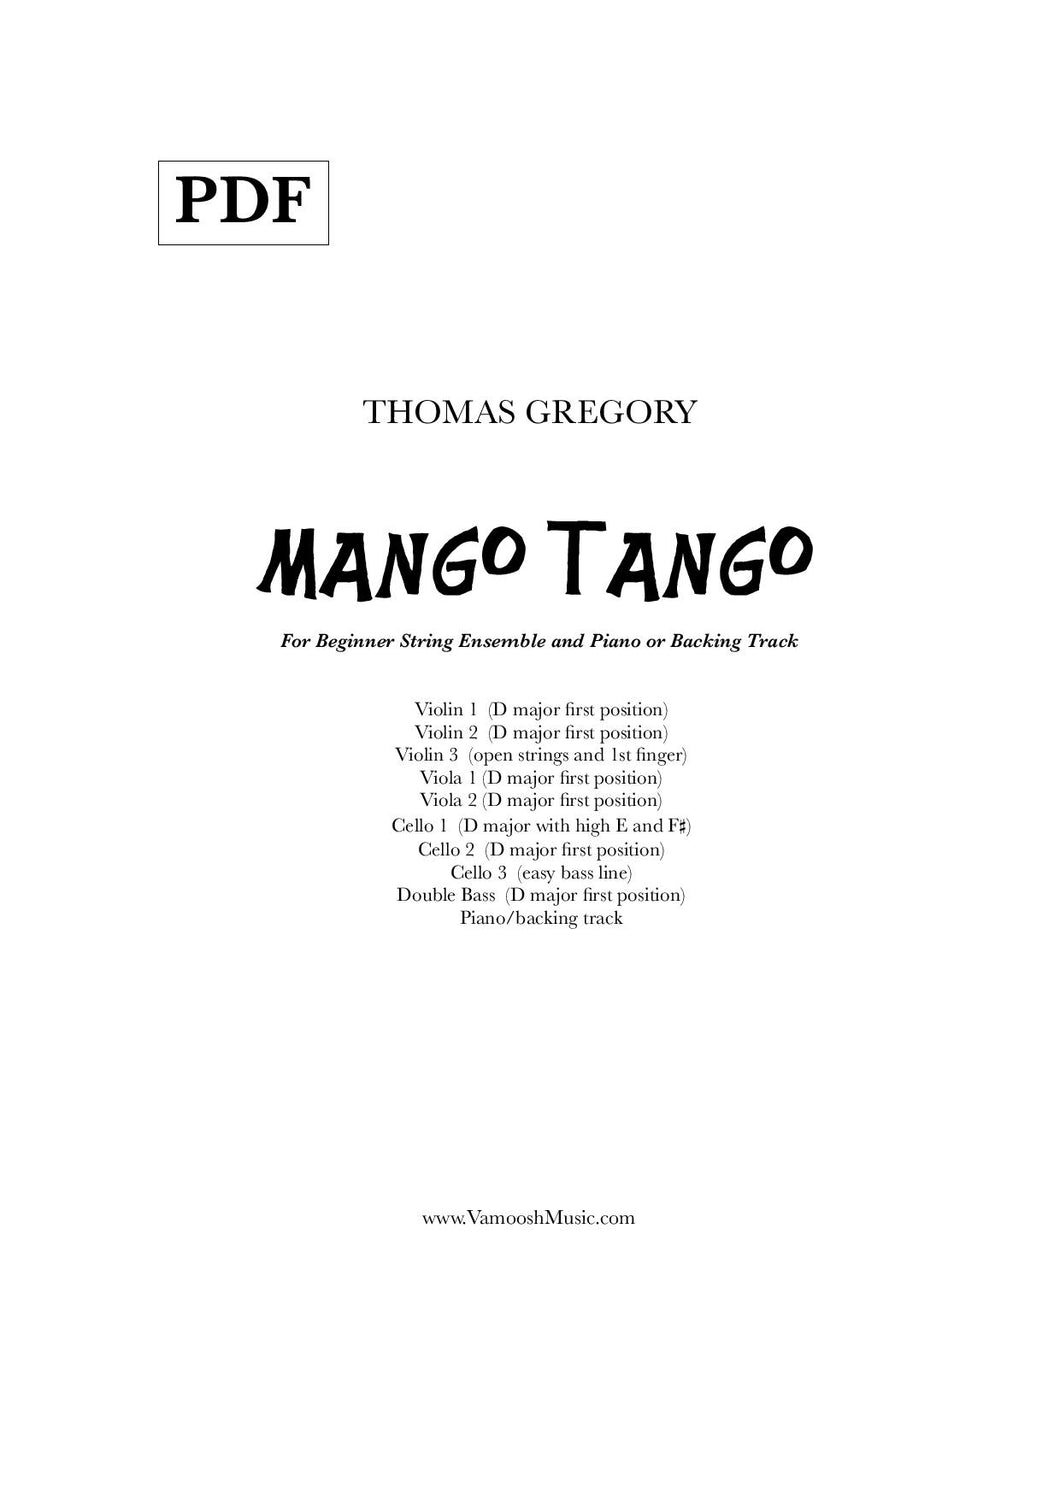 Mango Tango (PDF) by Thomas Gregory